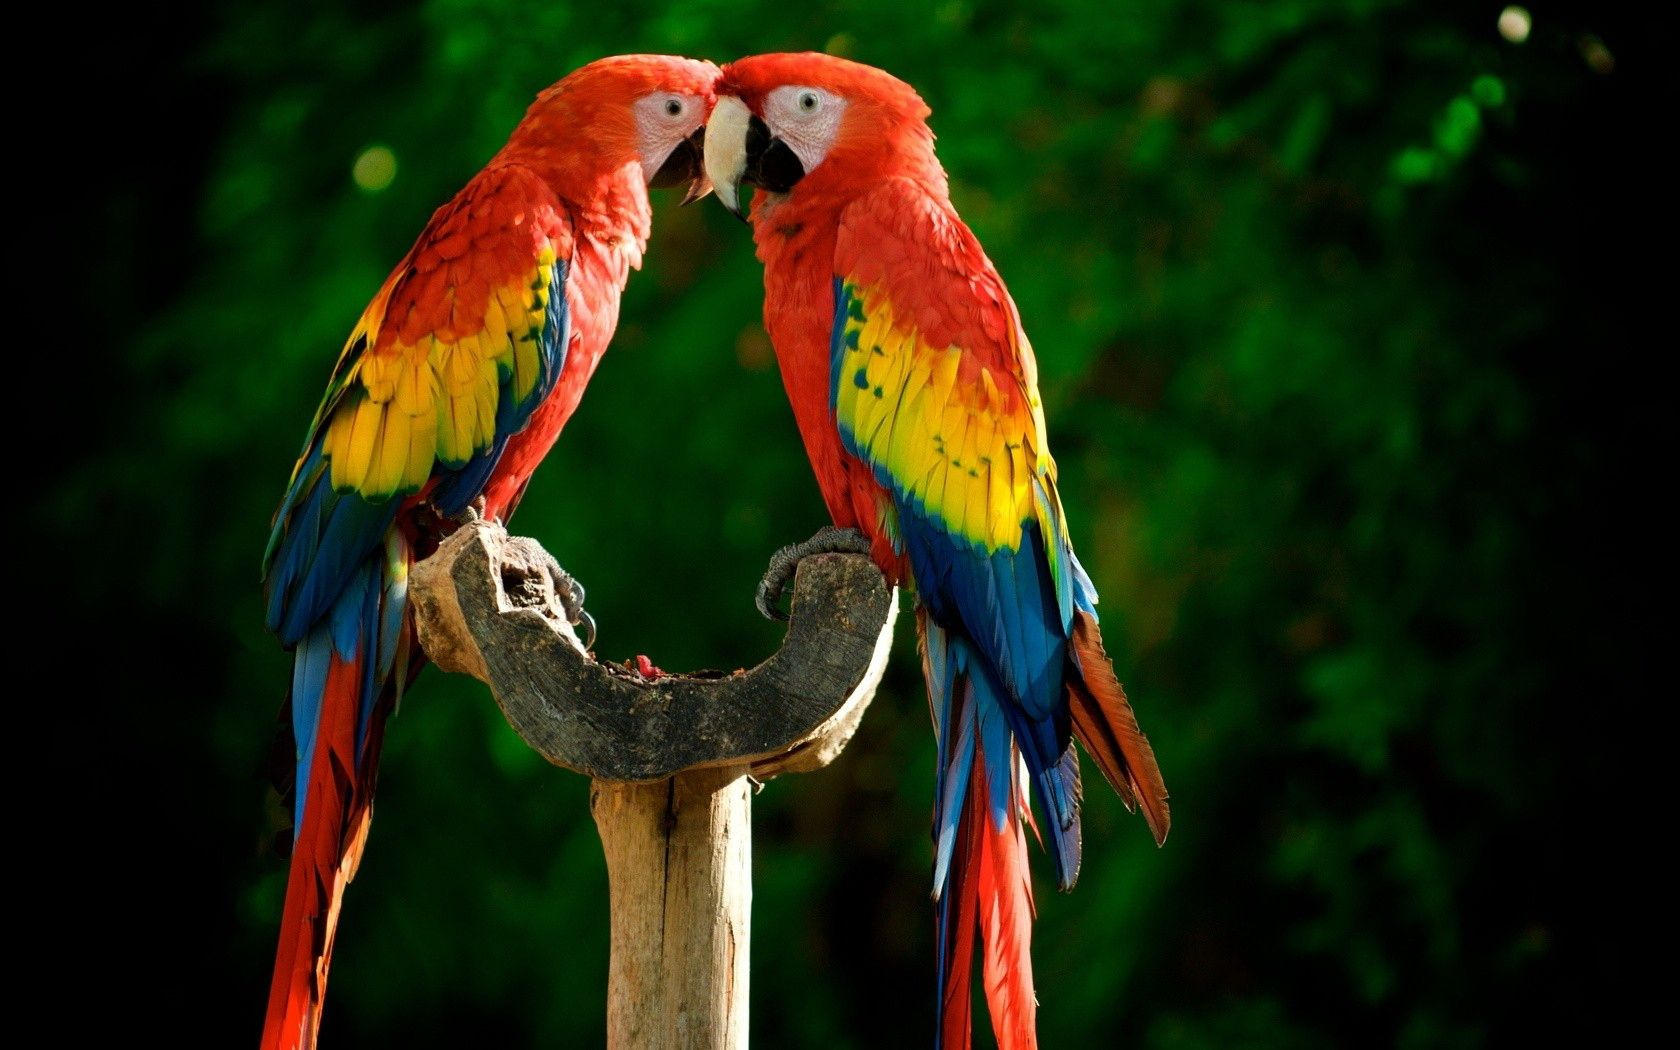 Two Colorful Parrots Beautiful Birds Animal Wallpapers Hd